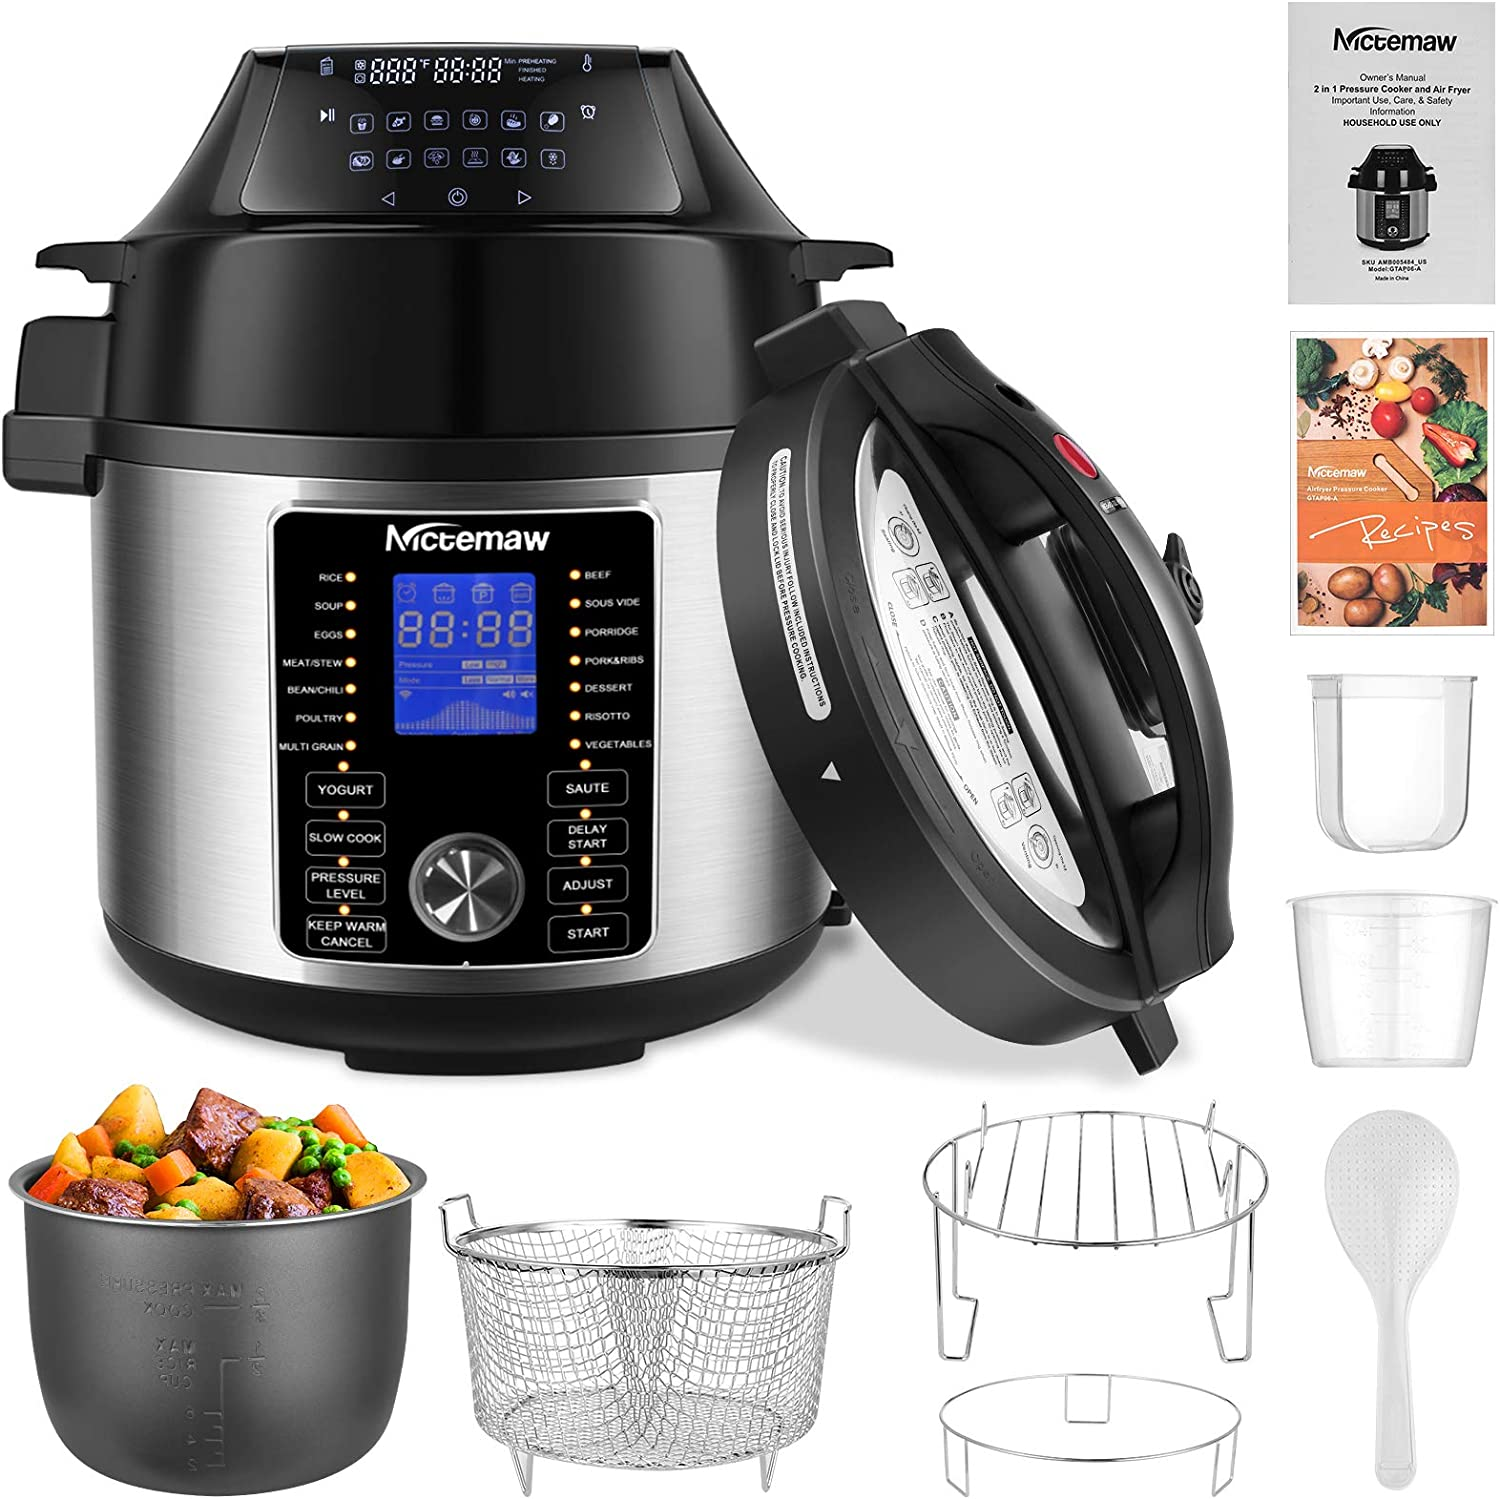 Nictemaw Pressure Cooker and Air Fryer Combos 6Qt, Multi-functional 17-IN-1 Pressure Rice Cooker &12-IN-1 Air Fryer 1500W with Two Detachable Lids, Two LCD Digital Control Panels, Free Recipe Book